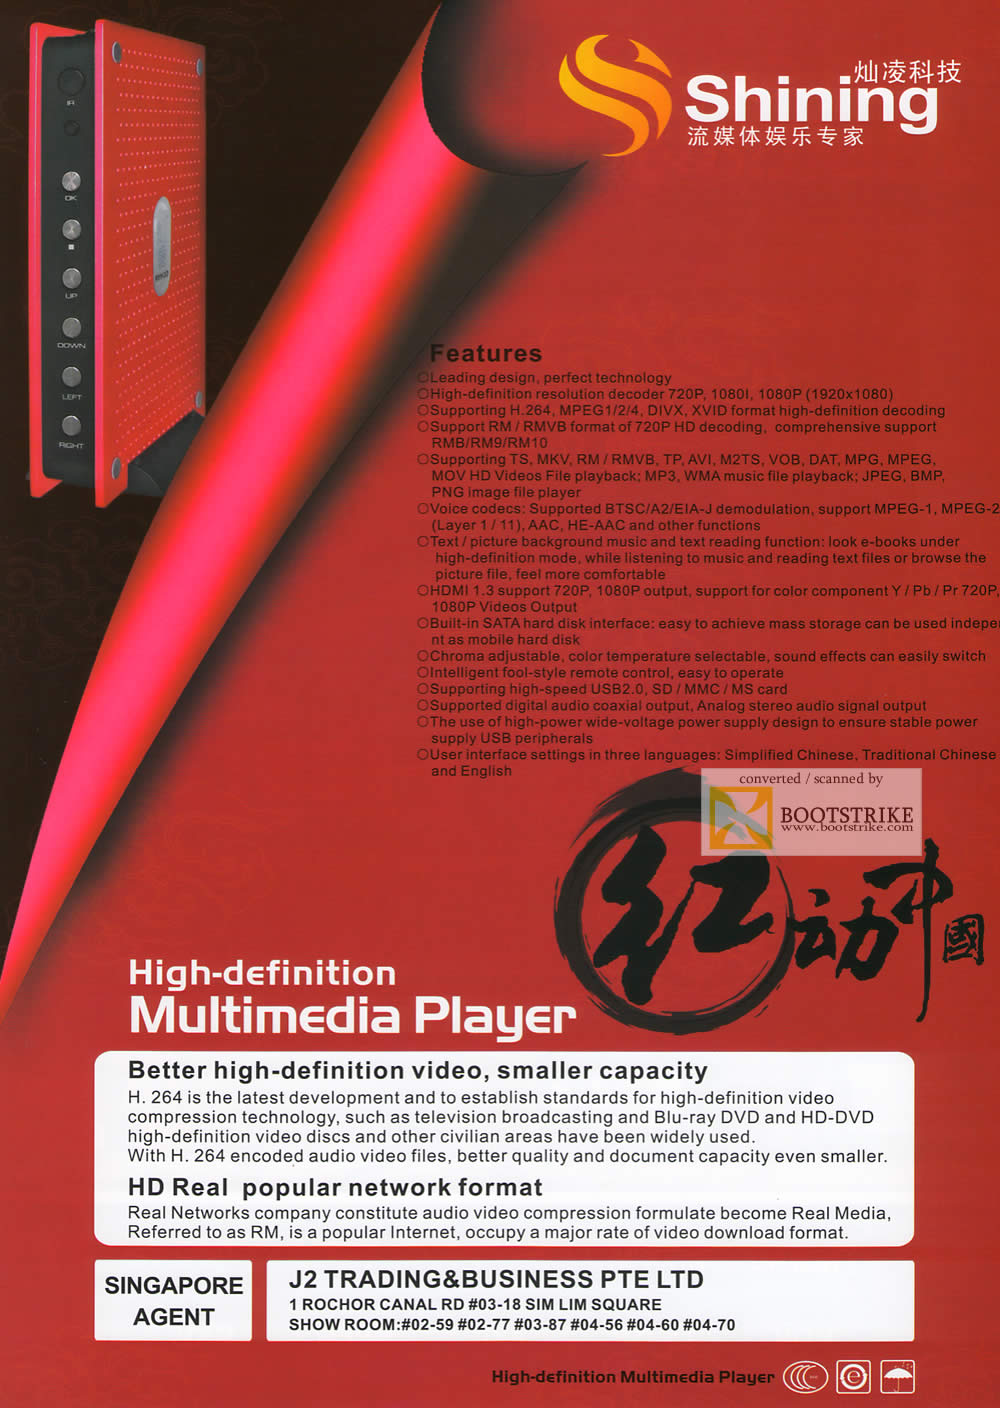 PC Show 2009 price list image brochure of Shining High Definition Multimedia Player Features